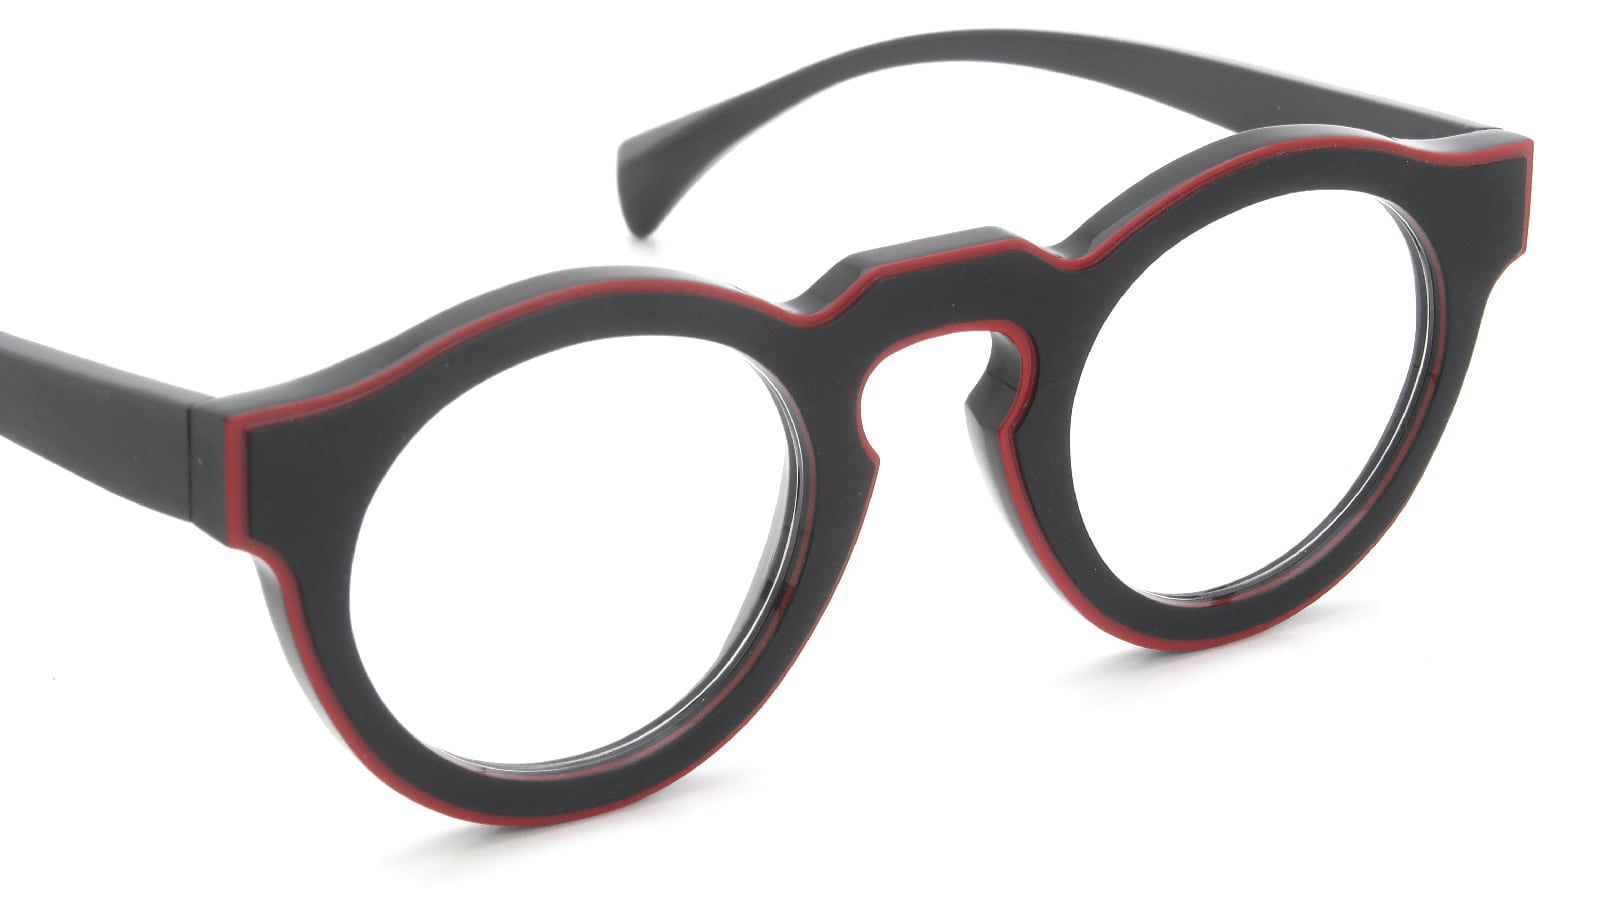 Jacques Durand PAQUES 106 col.141 HM-Black-Red 6